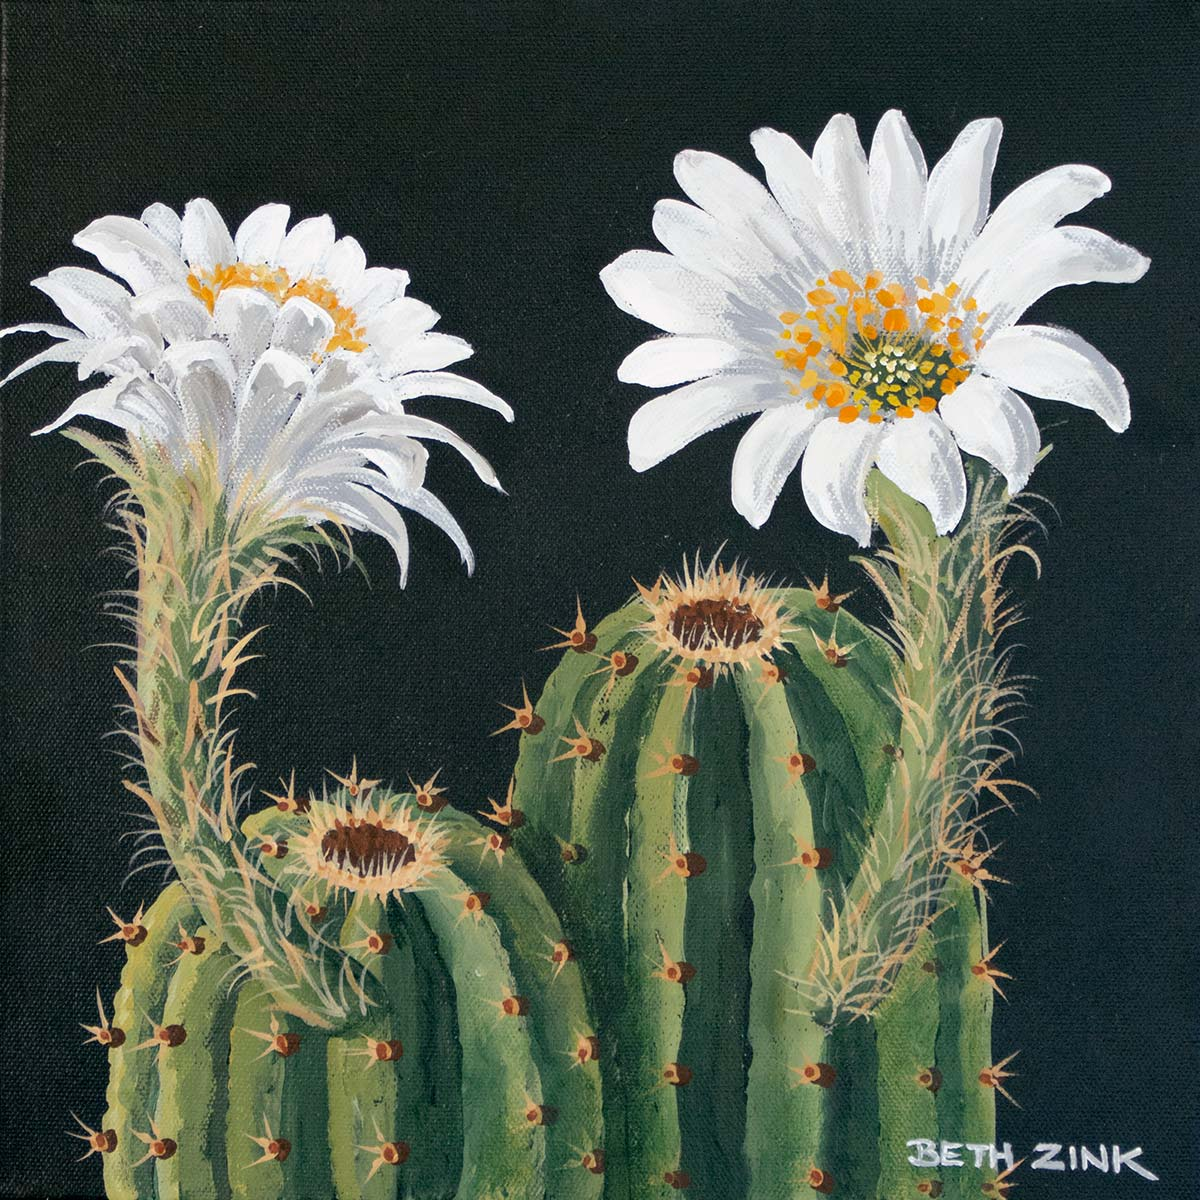 beth zink painting cereus with white flowers